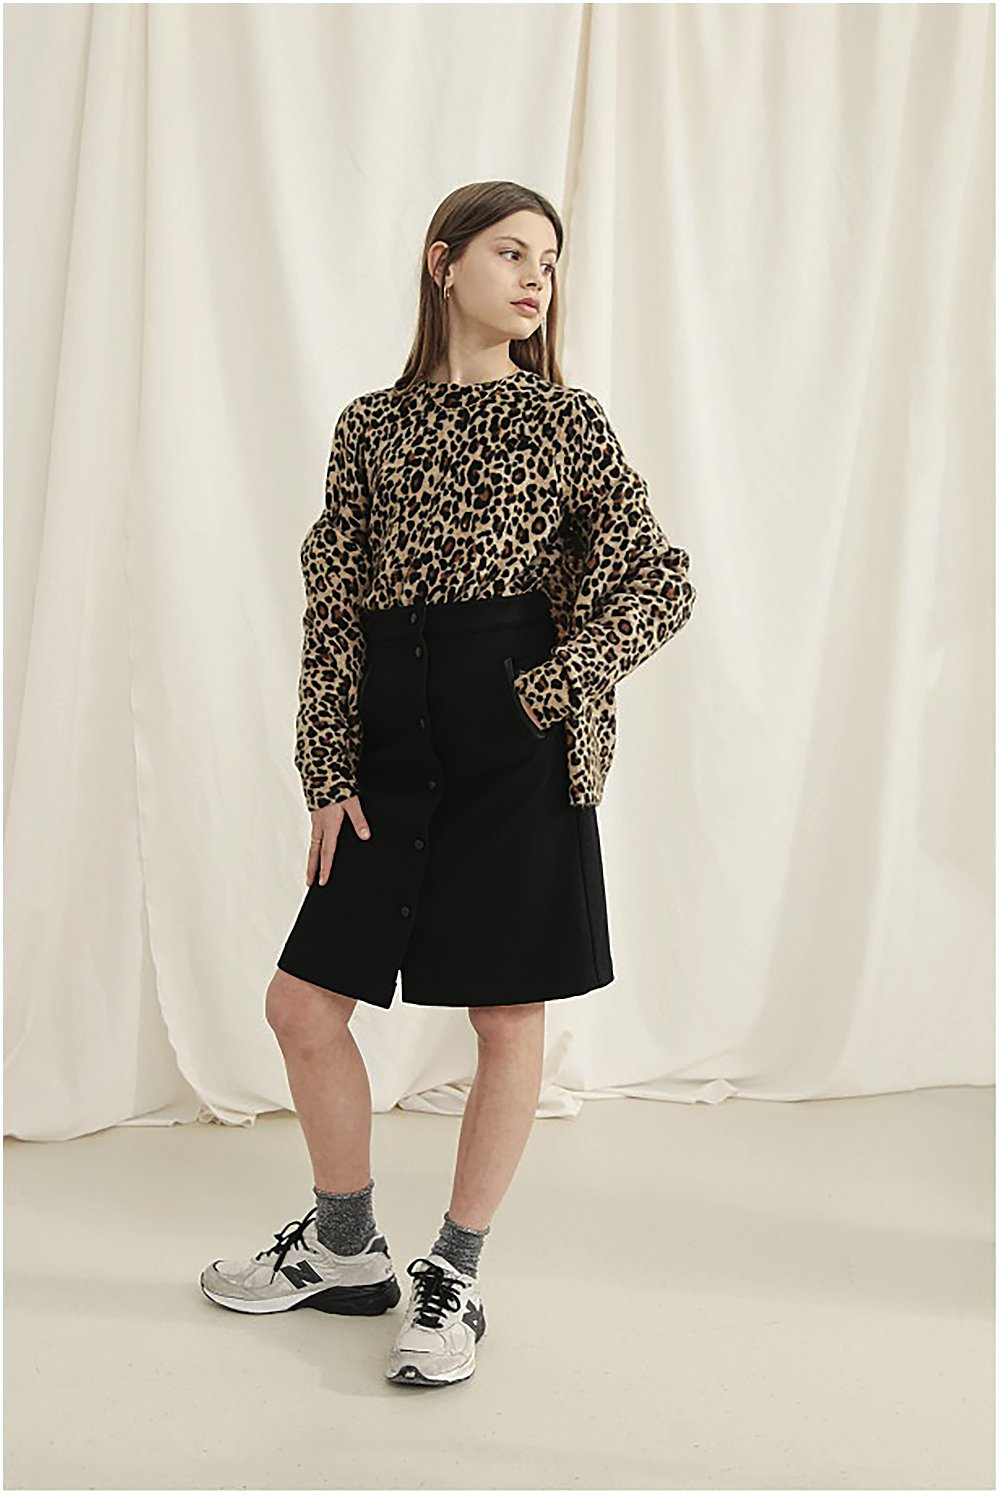 Young girl wearing a Leopard print jumper a fashion staple for the AW18 season